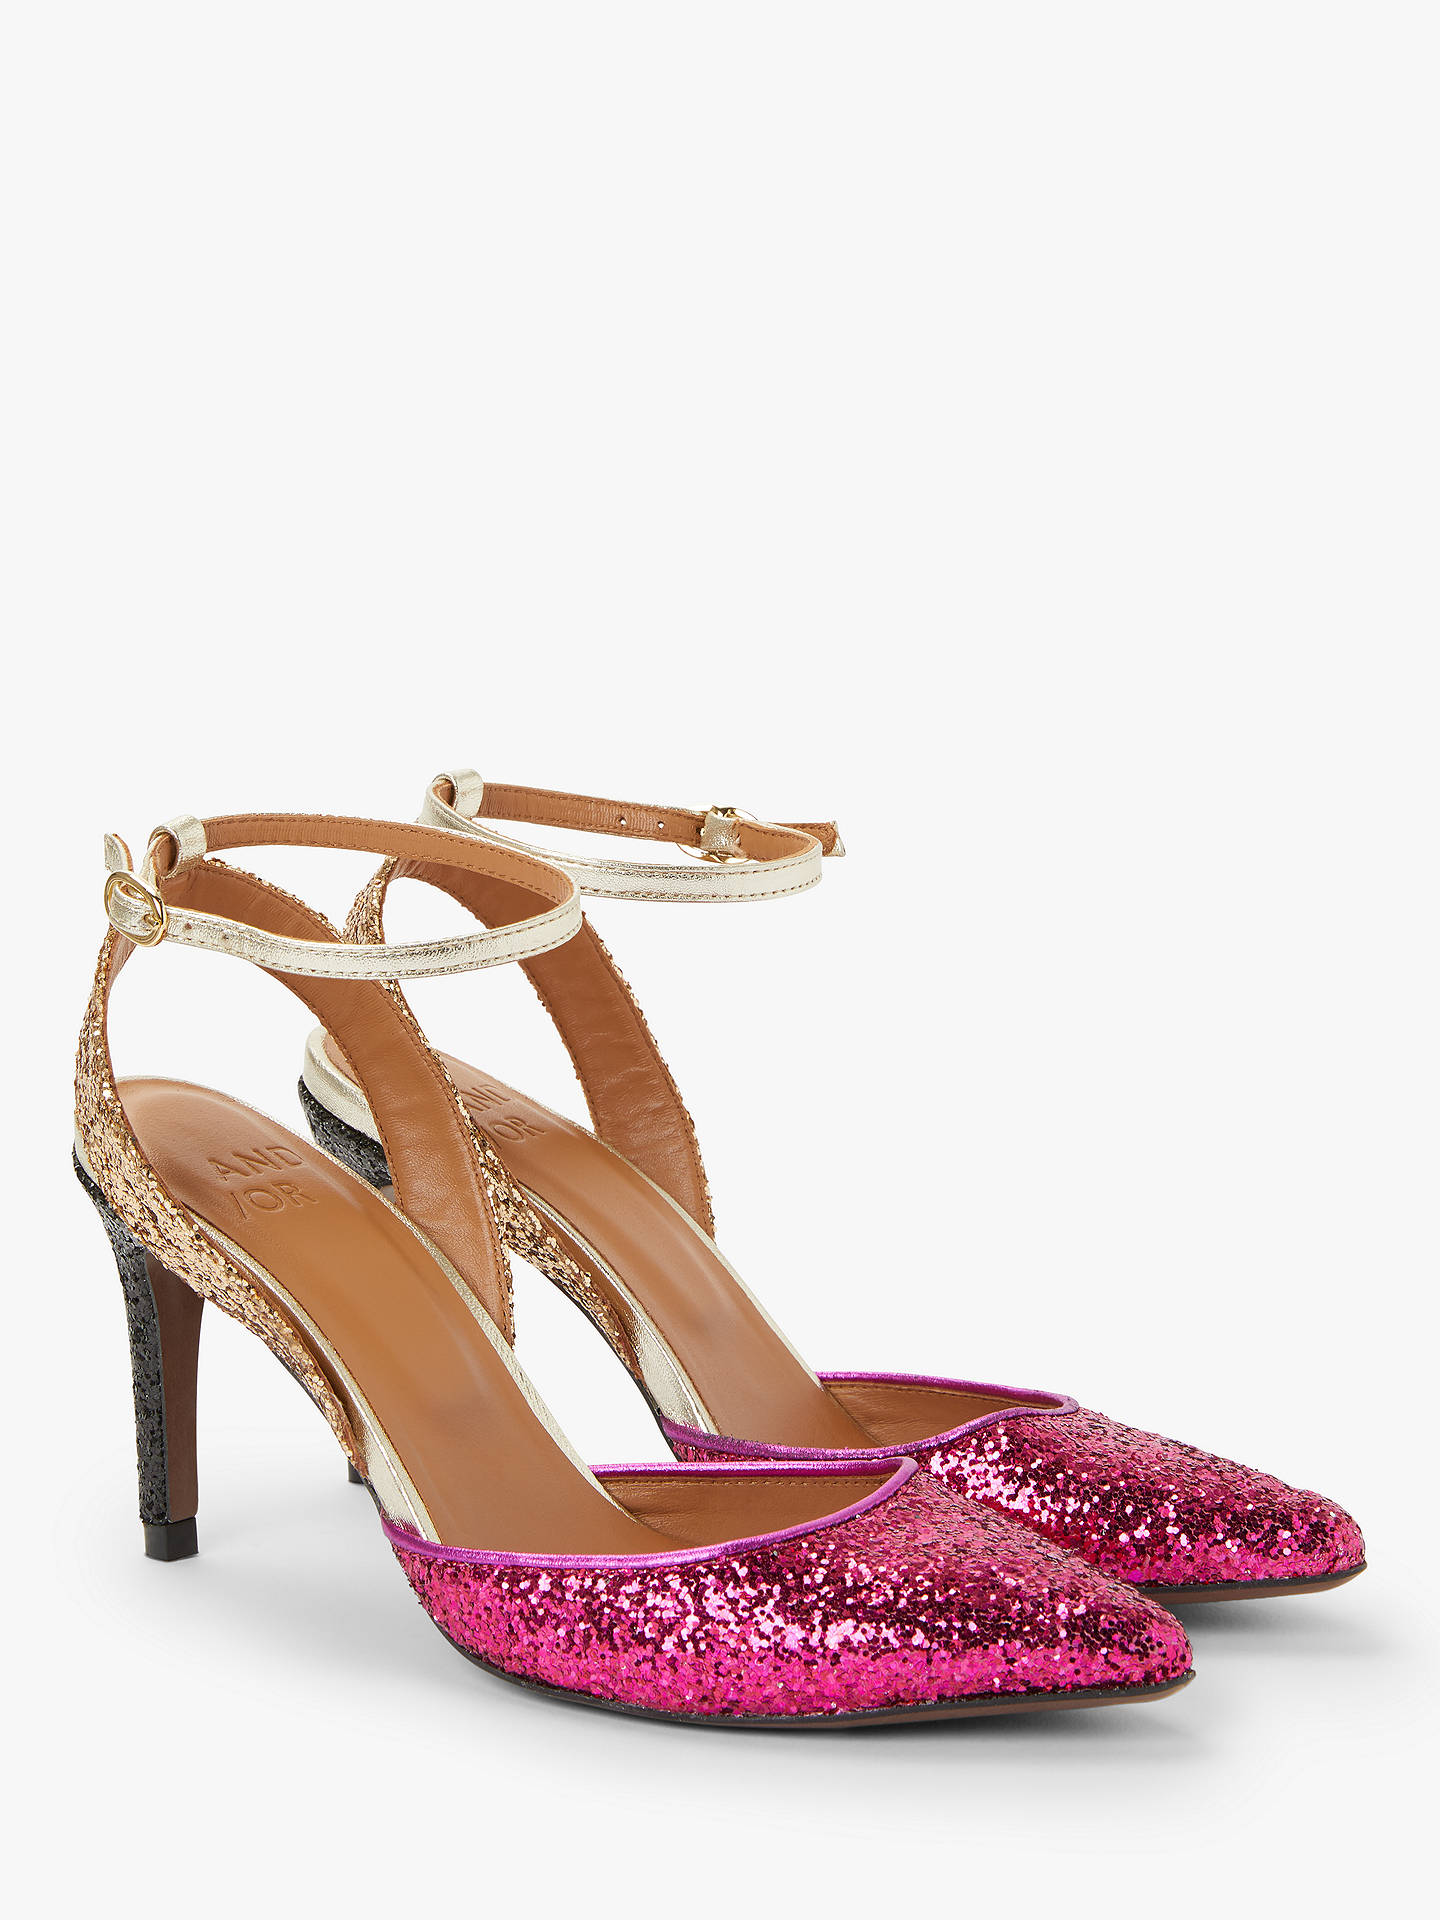 93e042e52298f AND/OR Ailey Slingback Stiletto Heel Court Shoes, Pink/Gold Glitter ...